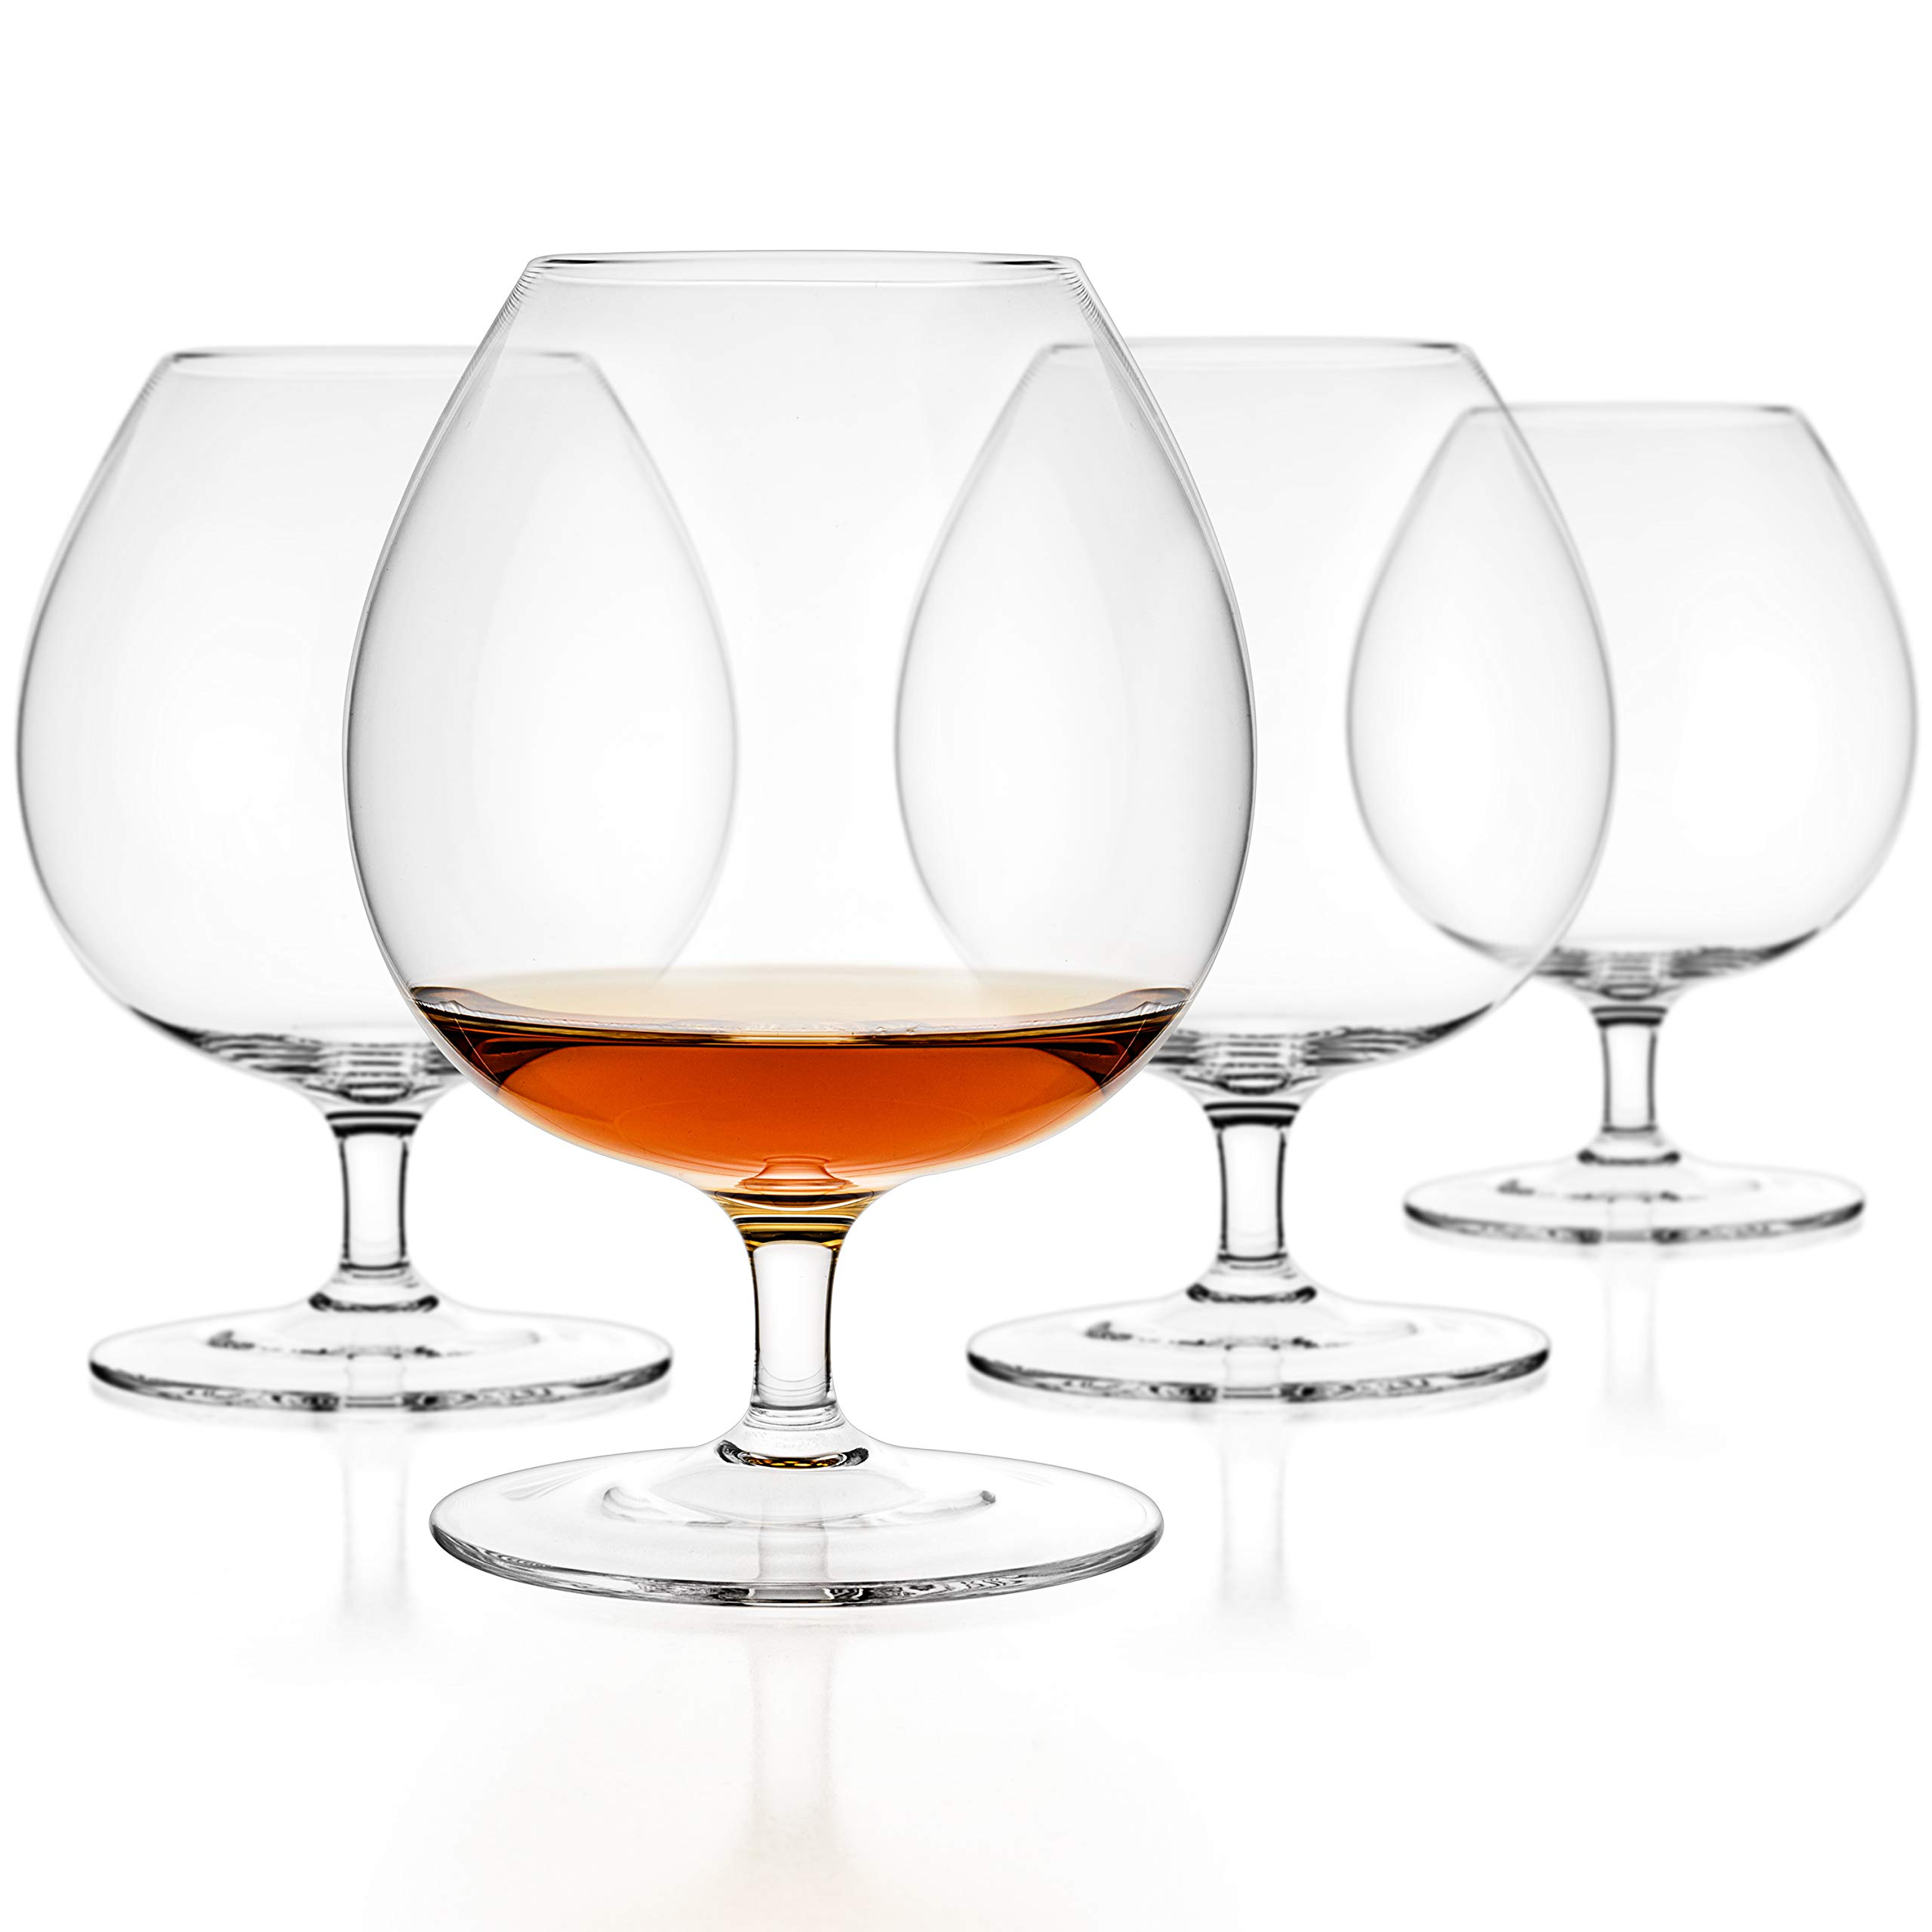 Luxbe - Brandy & Cognac Crystal Glasses Snifter, Set of 4 - Large Handcrafted - 100% Lead-Free Crystal Glass - Great for Spirits Drinks - Bourbon - Wine - 25.5-ounce by Luxbe